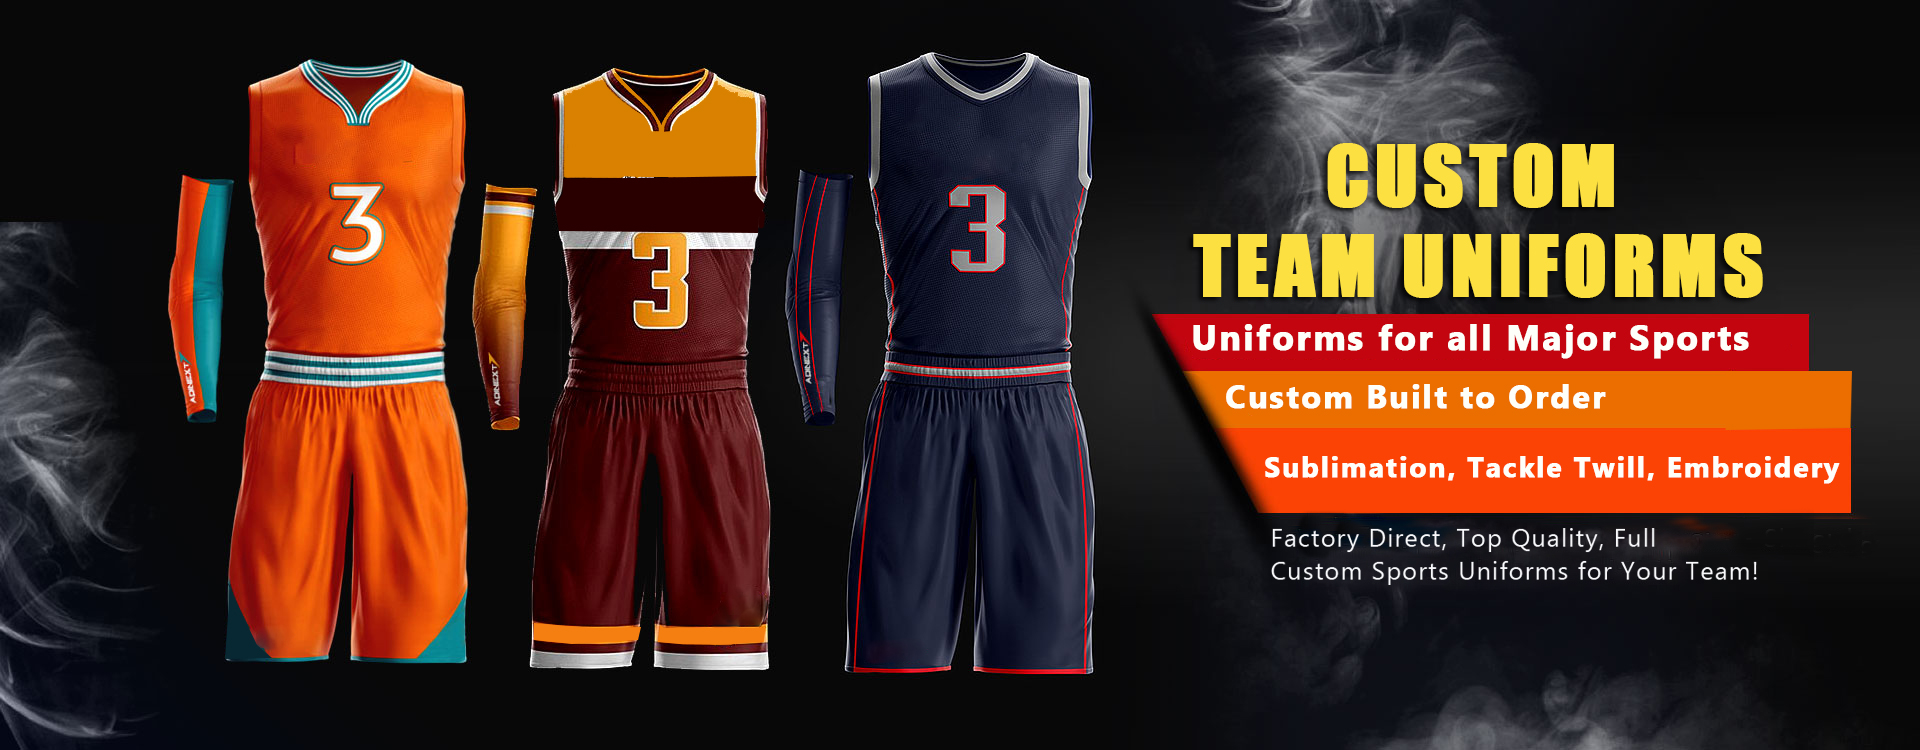 Custom Sports Uniforms Offered by Affordable Uniforms Online